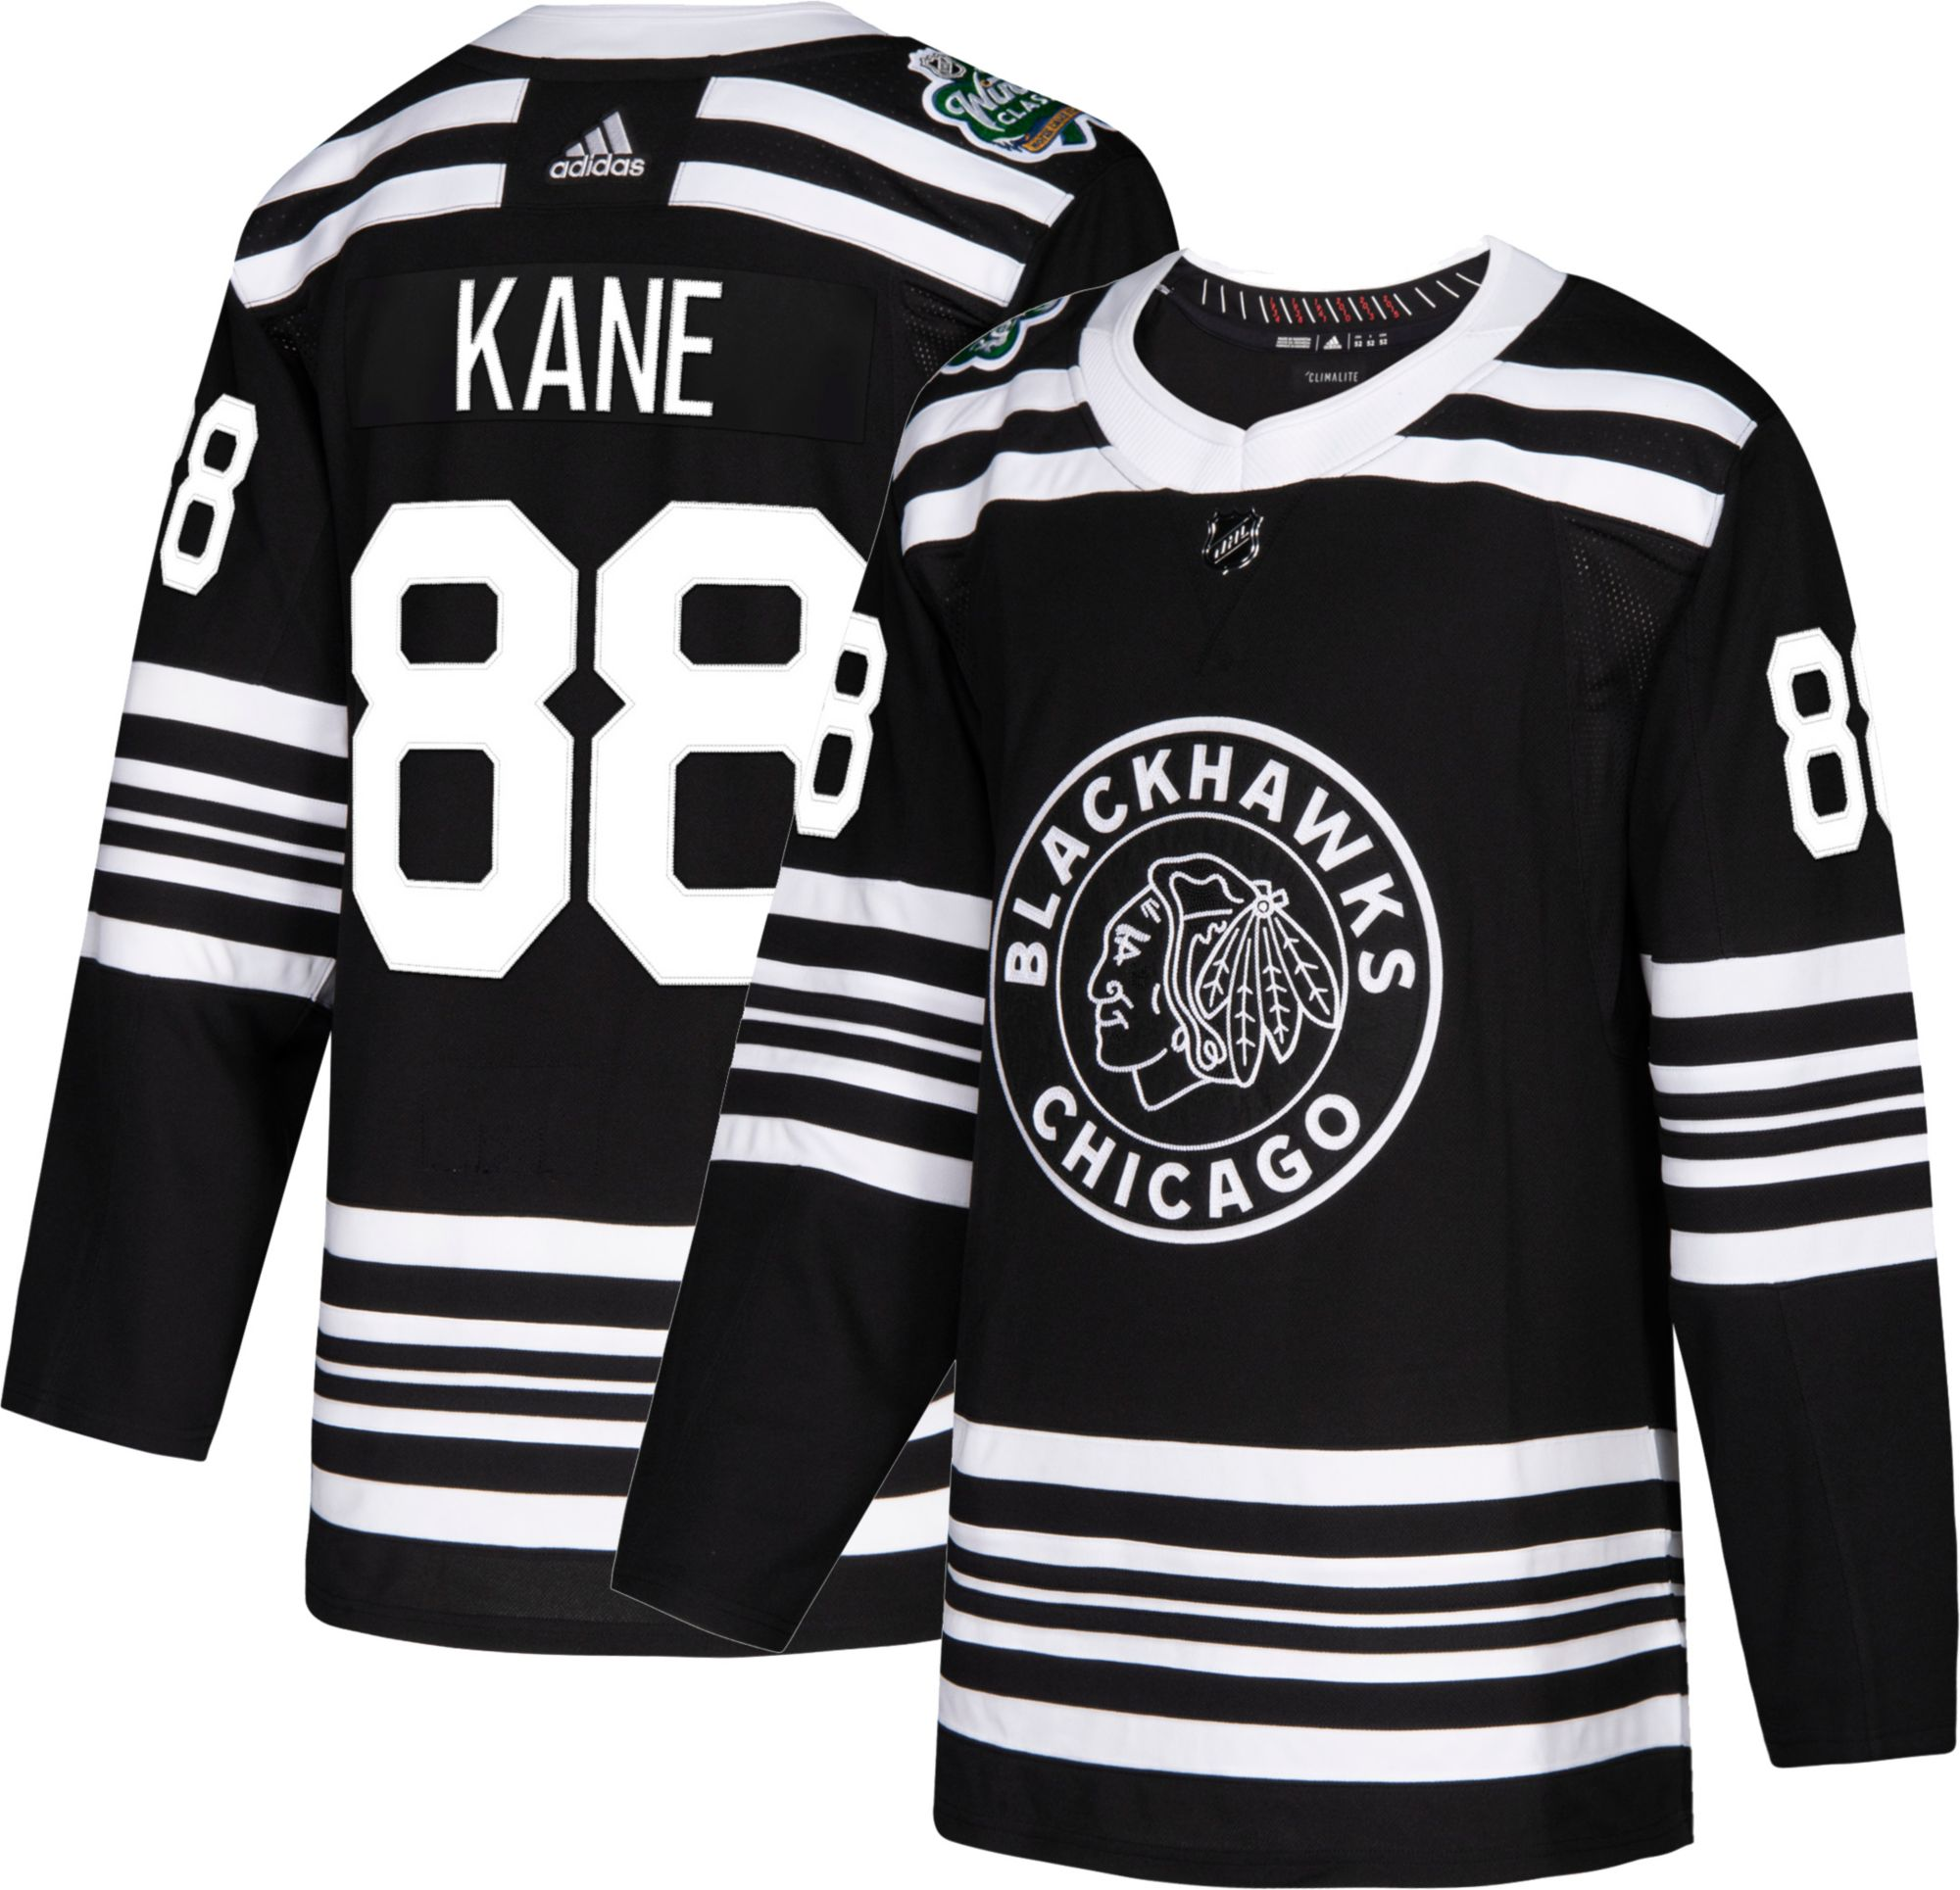 d6ea35535d8 adidas Men's 2019 Winter Classic Chicago Blackhawks Patrick Kane #88  Authentic Pro Jersey, Size: 56, Black